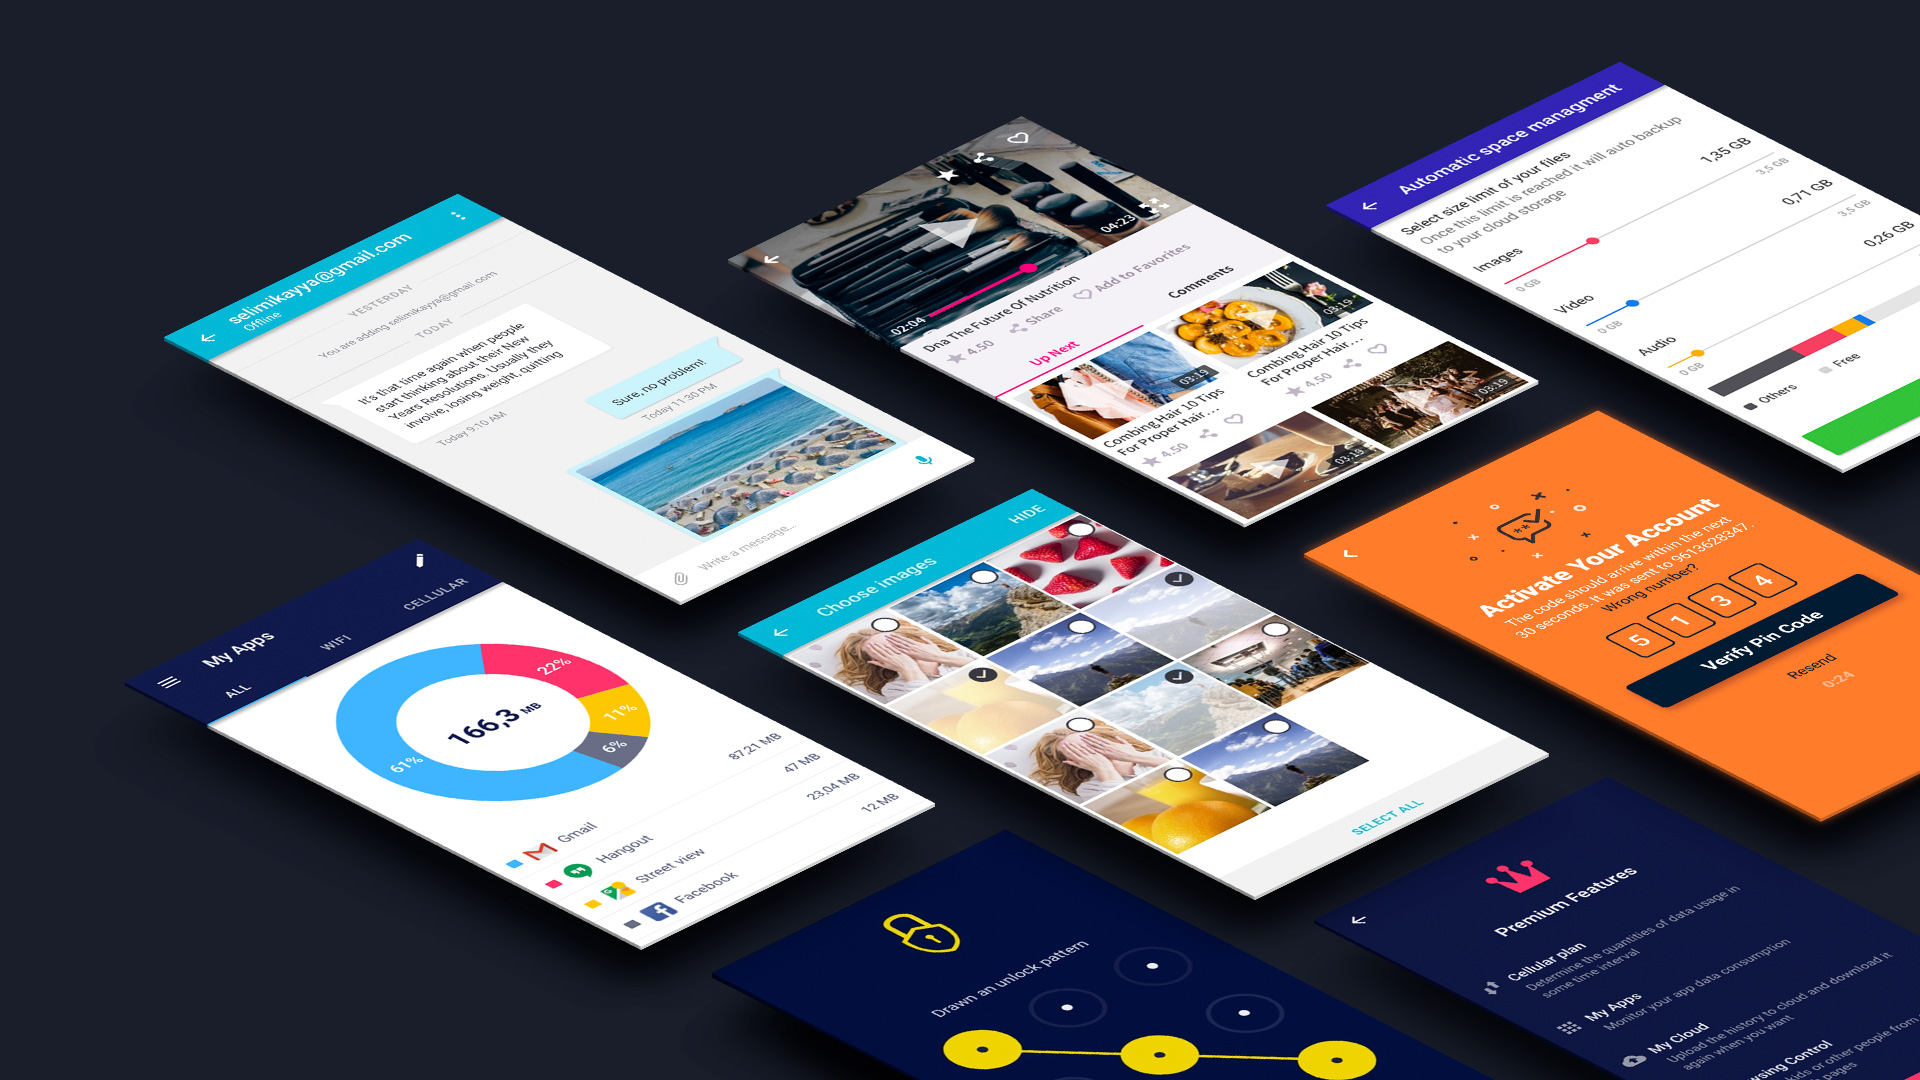 Android Apps For Web Designers